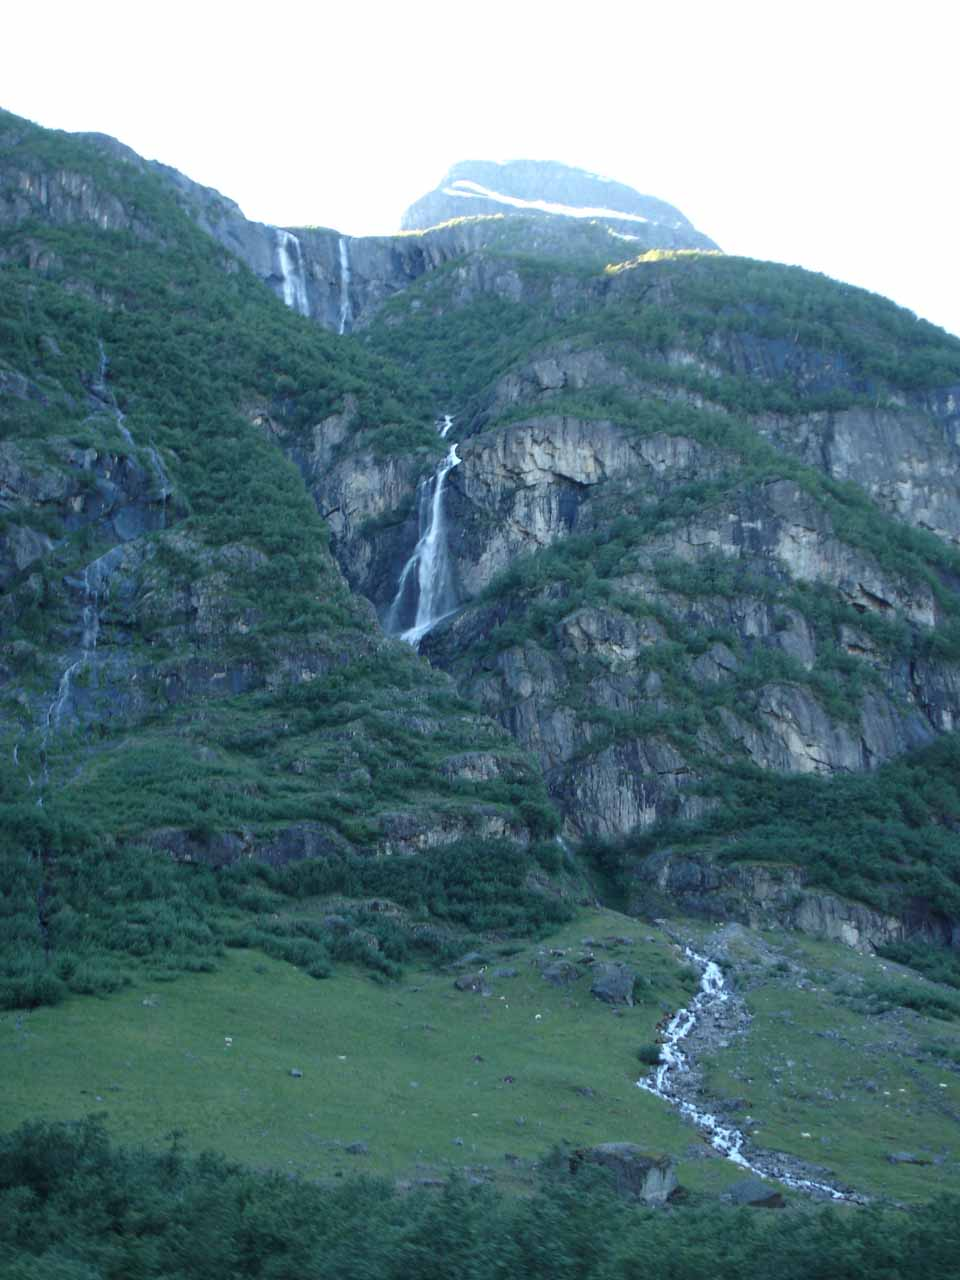 This thin multi-tiered waterfall might be the one between Volefossen and Melkevollfossen or it could be the one just north of Melkevollfossen on the Myklebustsetra